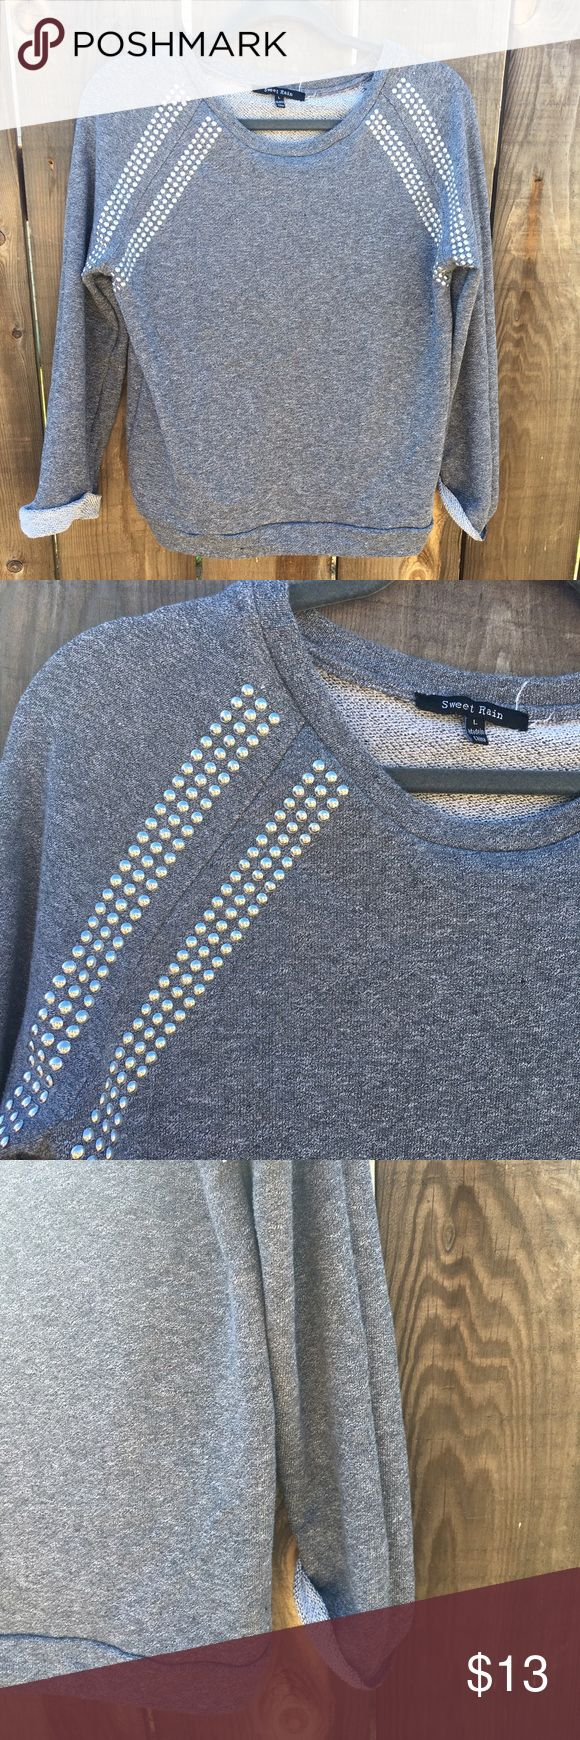 Relaxed grey sweater with studs Can wear sleeves cuffed or relaxed. Soft, grey. Metal studs. Size large but will best fit a small-Med for slouchy relaxed look. Tops Sweatshirts & Hoodies